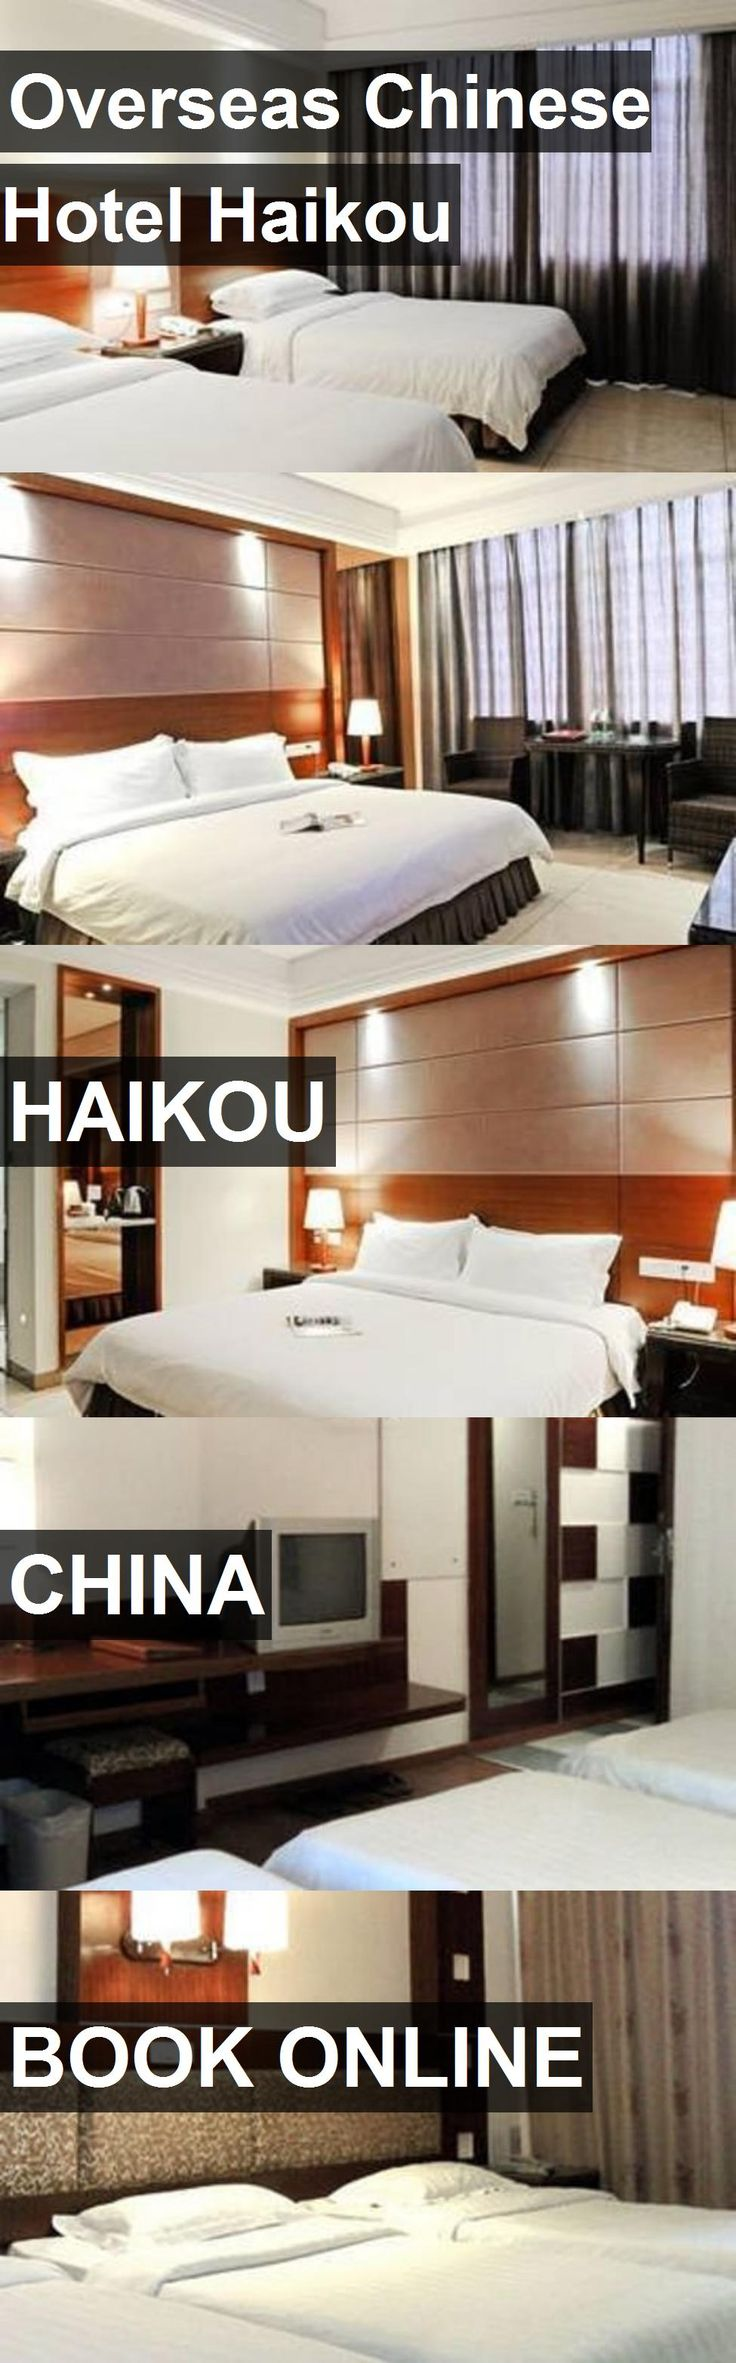 Hotel Overseas Chinese Hotel Haikou in Haikou, China. For more information, photos, reviews and best prices please follow the link. #China #Haikou #OverseasChineseHotelHaikou #hotel #travel #vacation